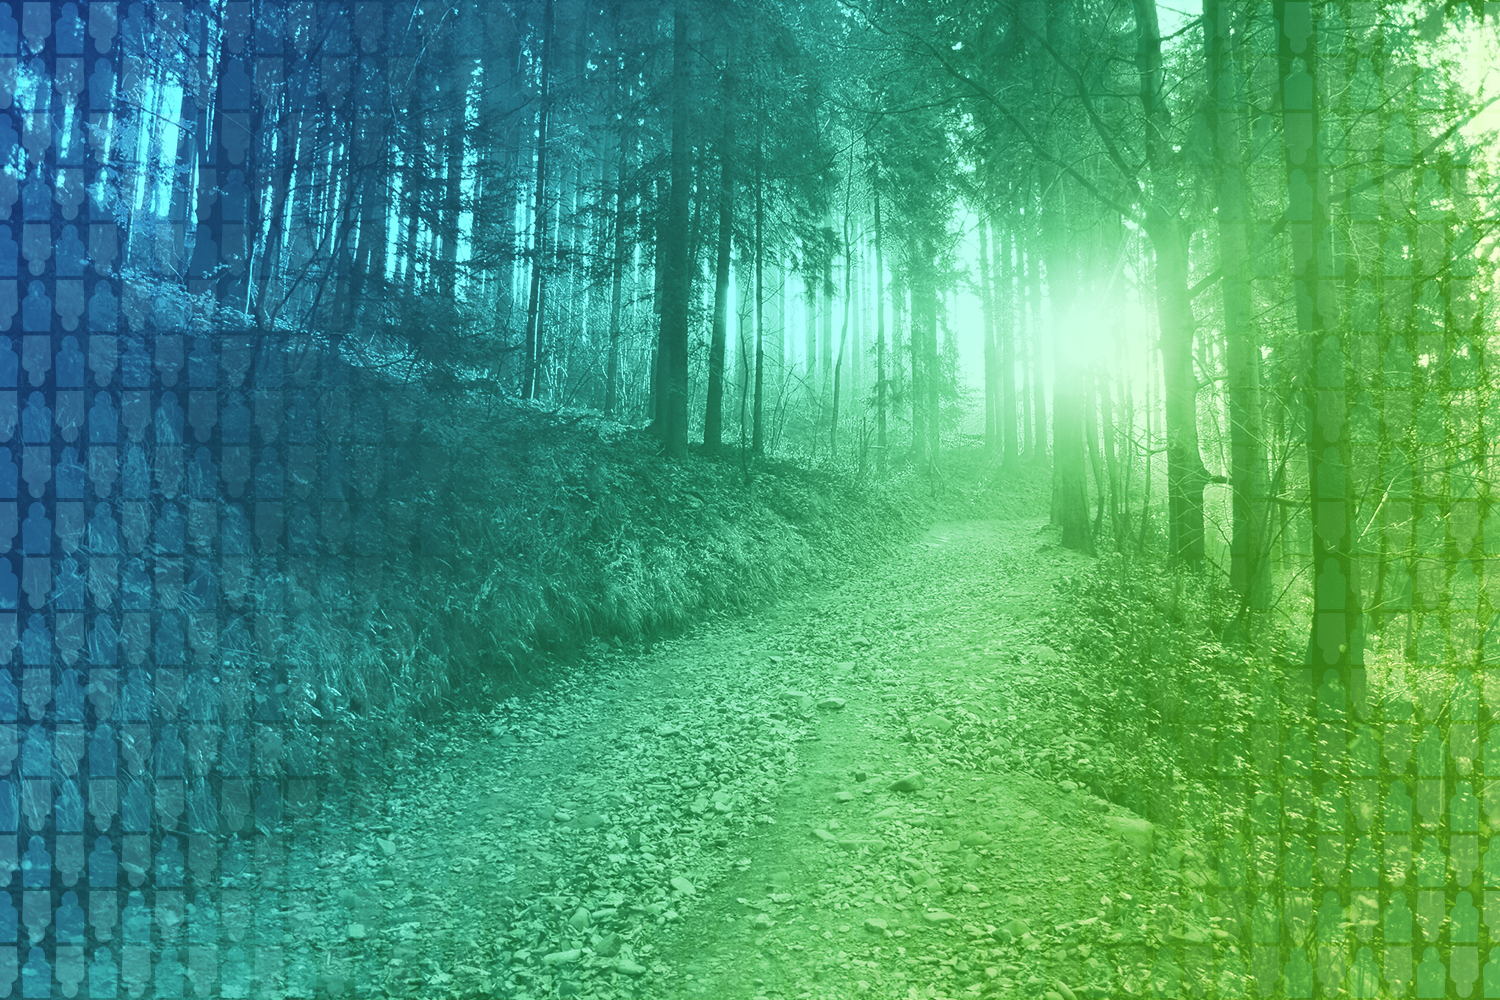 color-treated image of path leading upwards through the woods